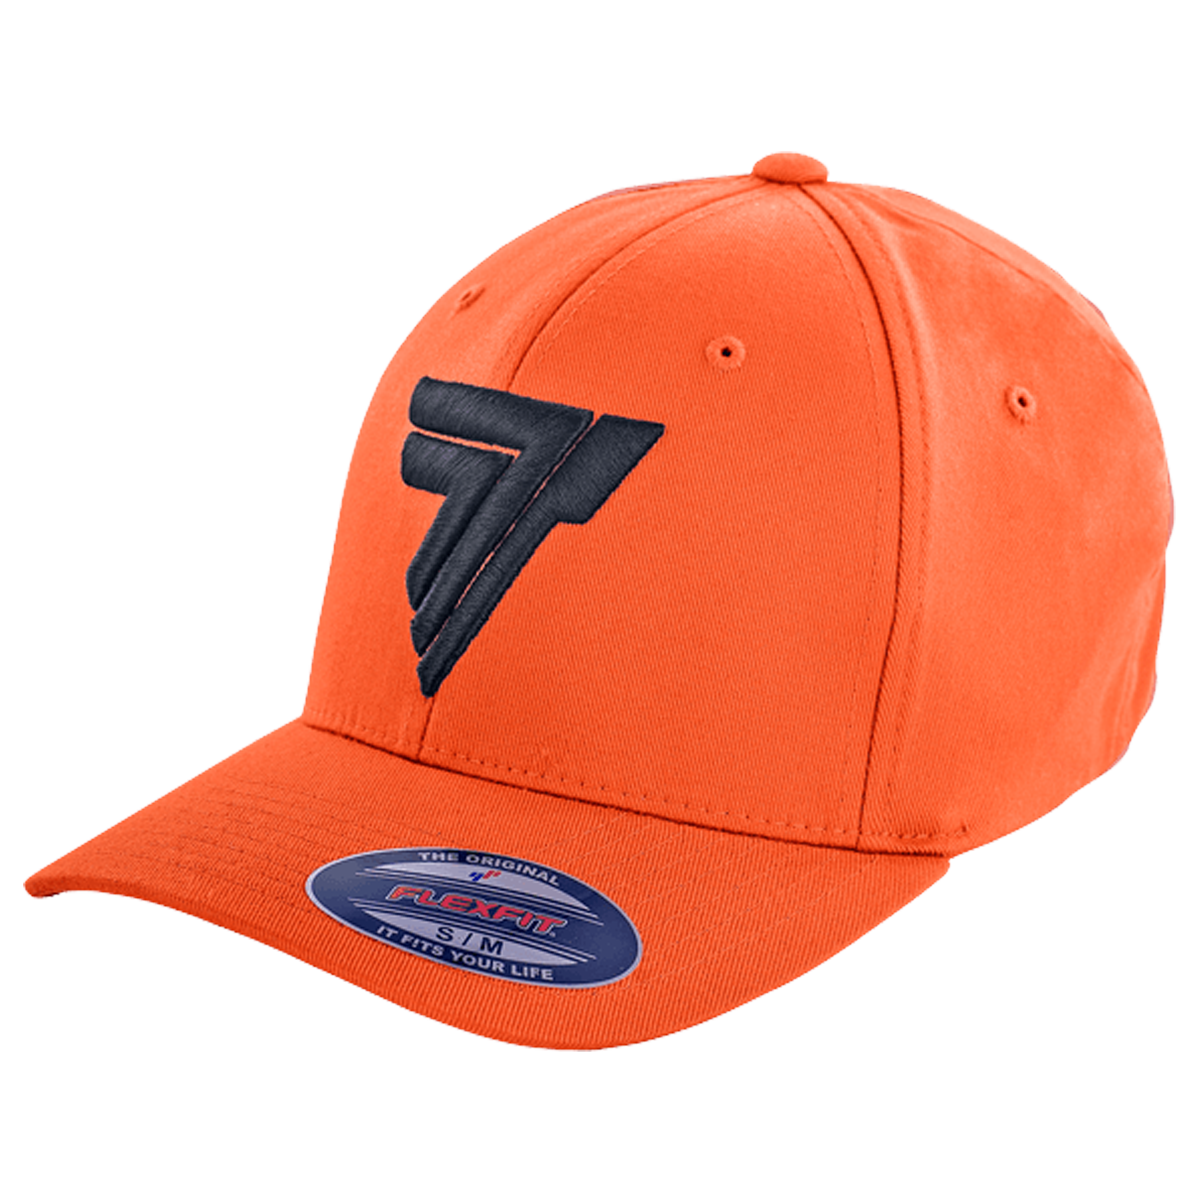 FULLCAP 005 - BLAC LOGO - ORANGE